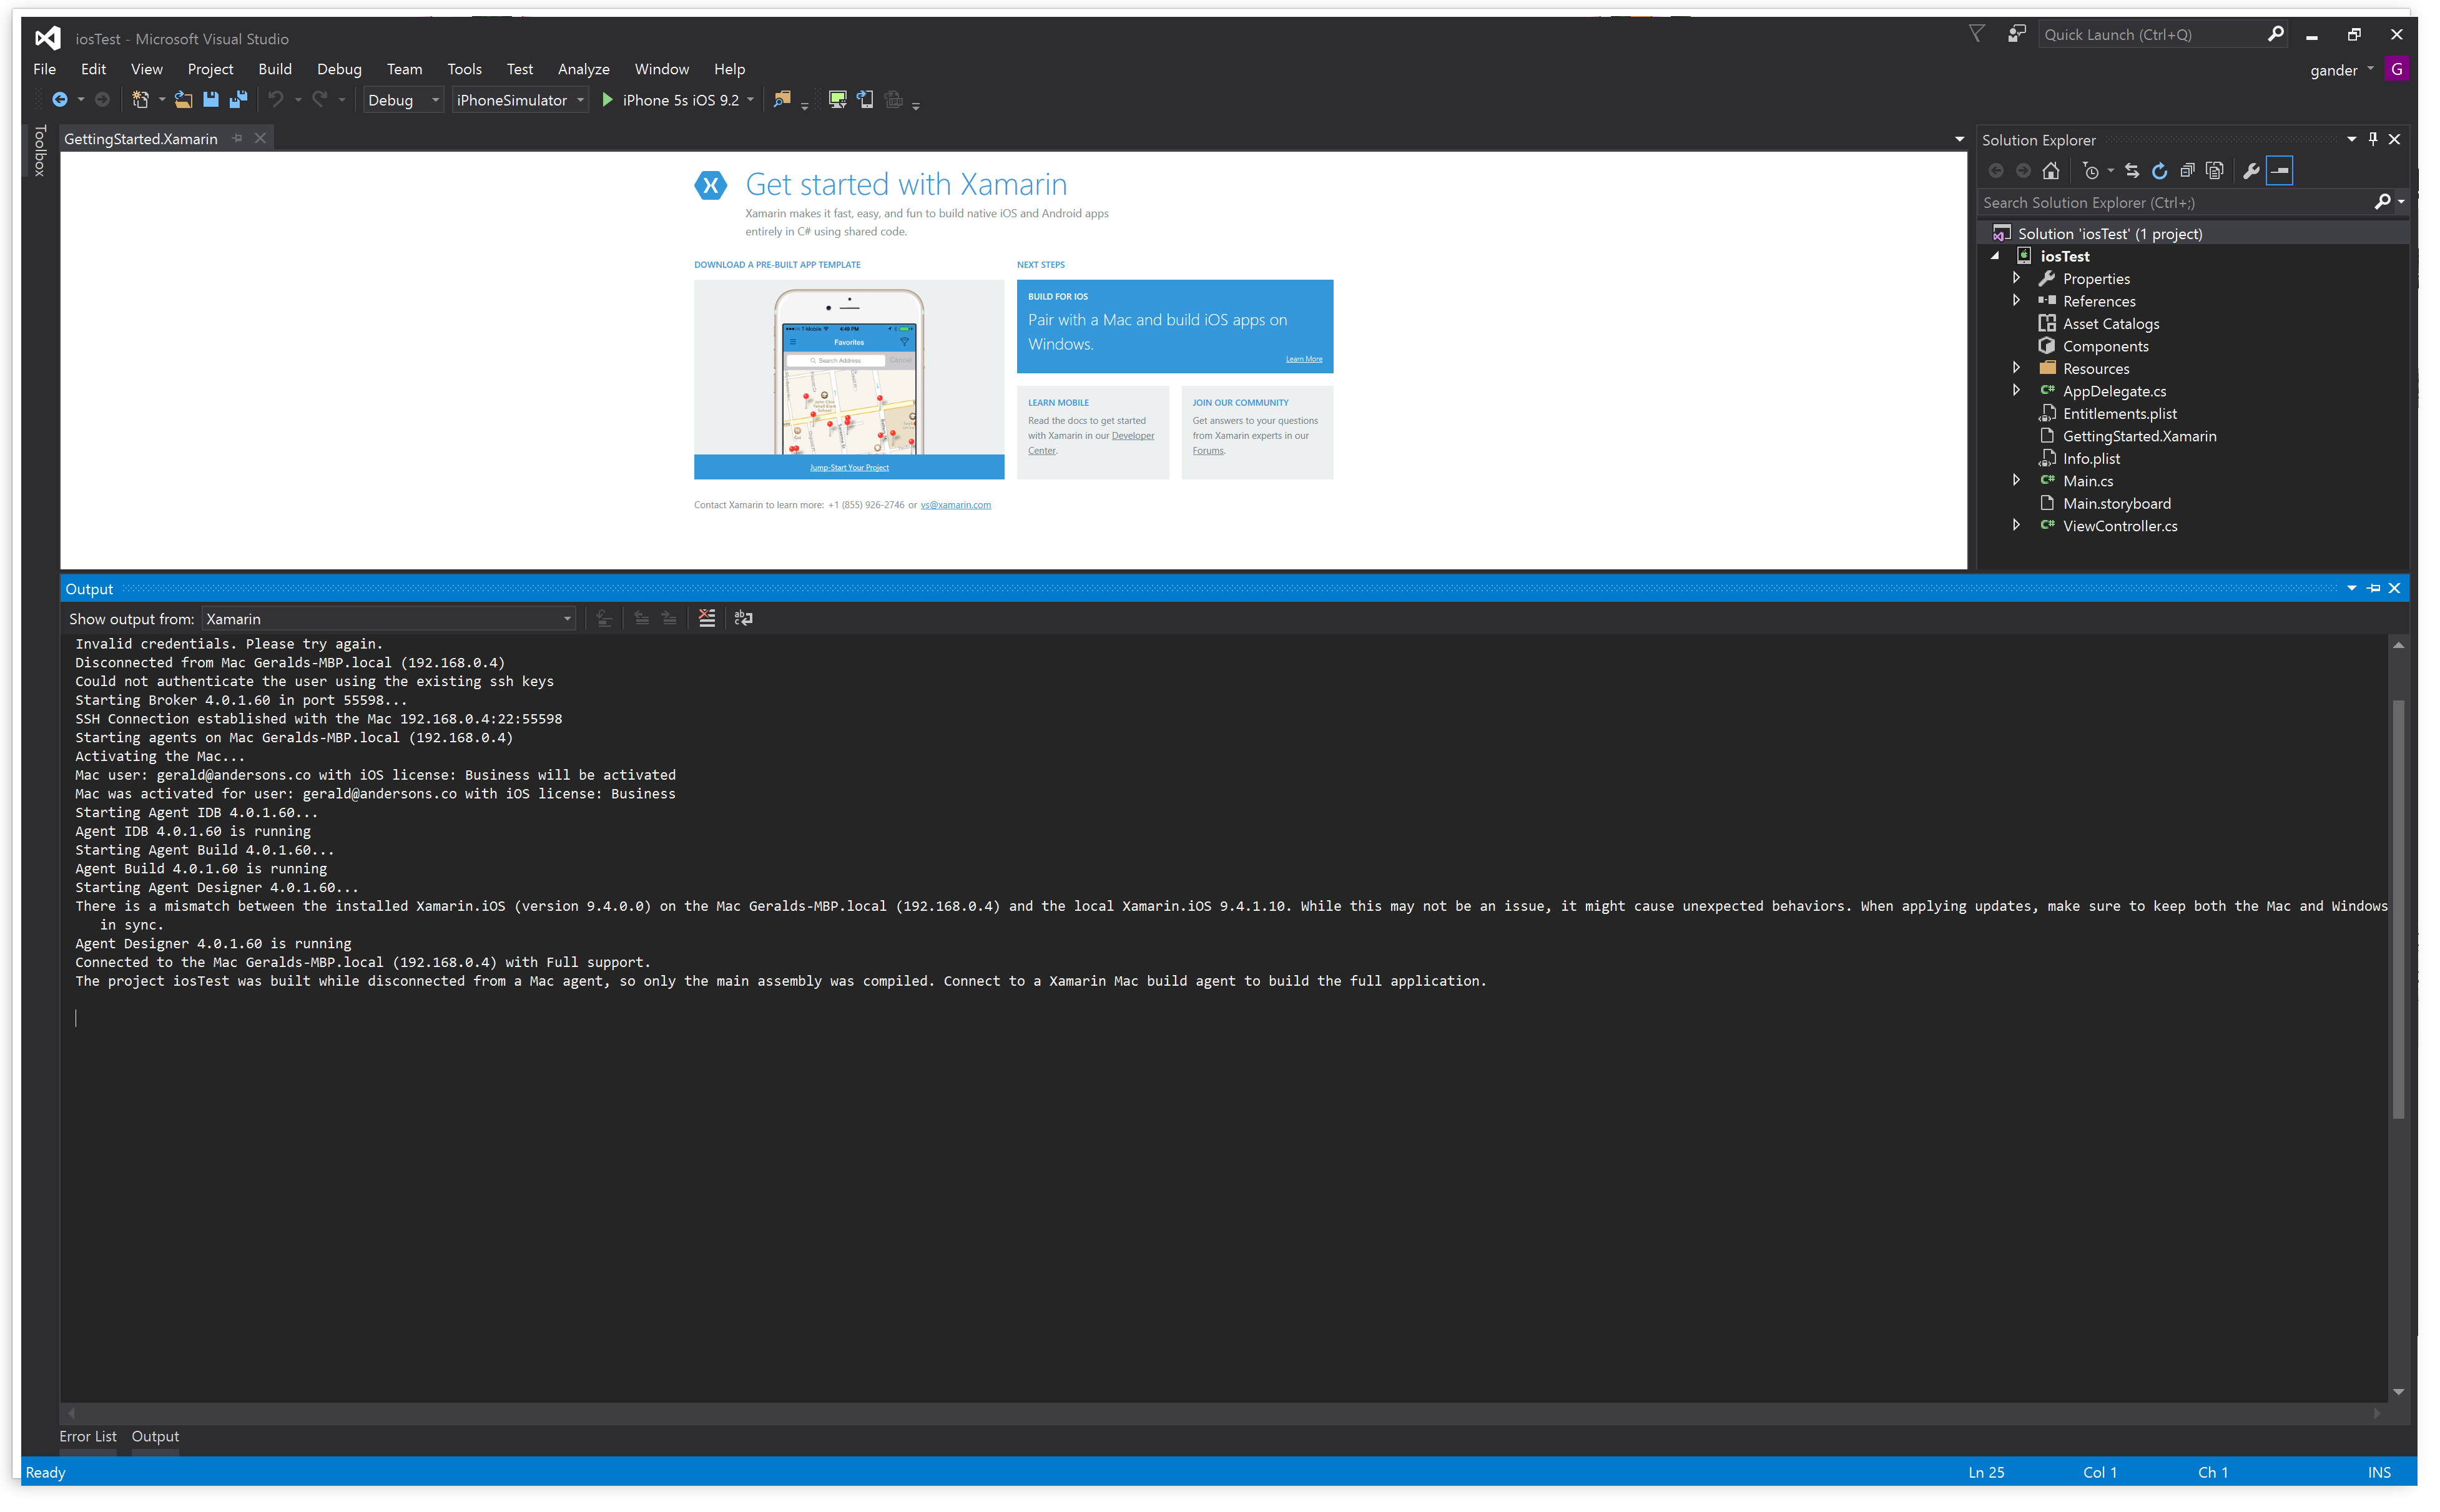 Stable Release: Xamarin 4, Cycle 6 Feature Release - Page 2